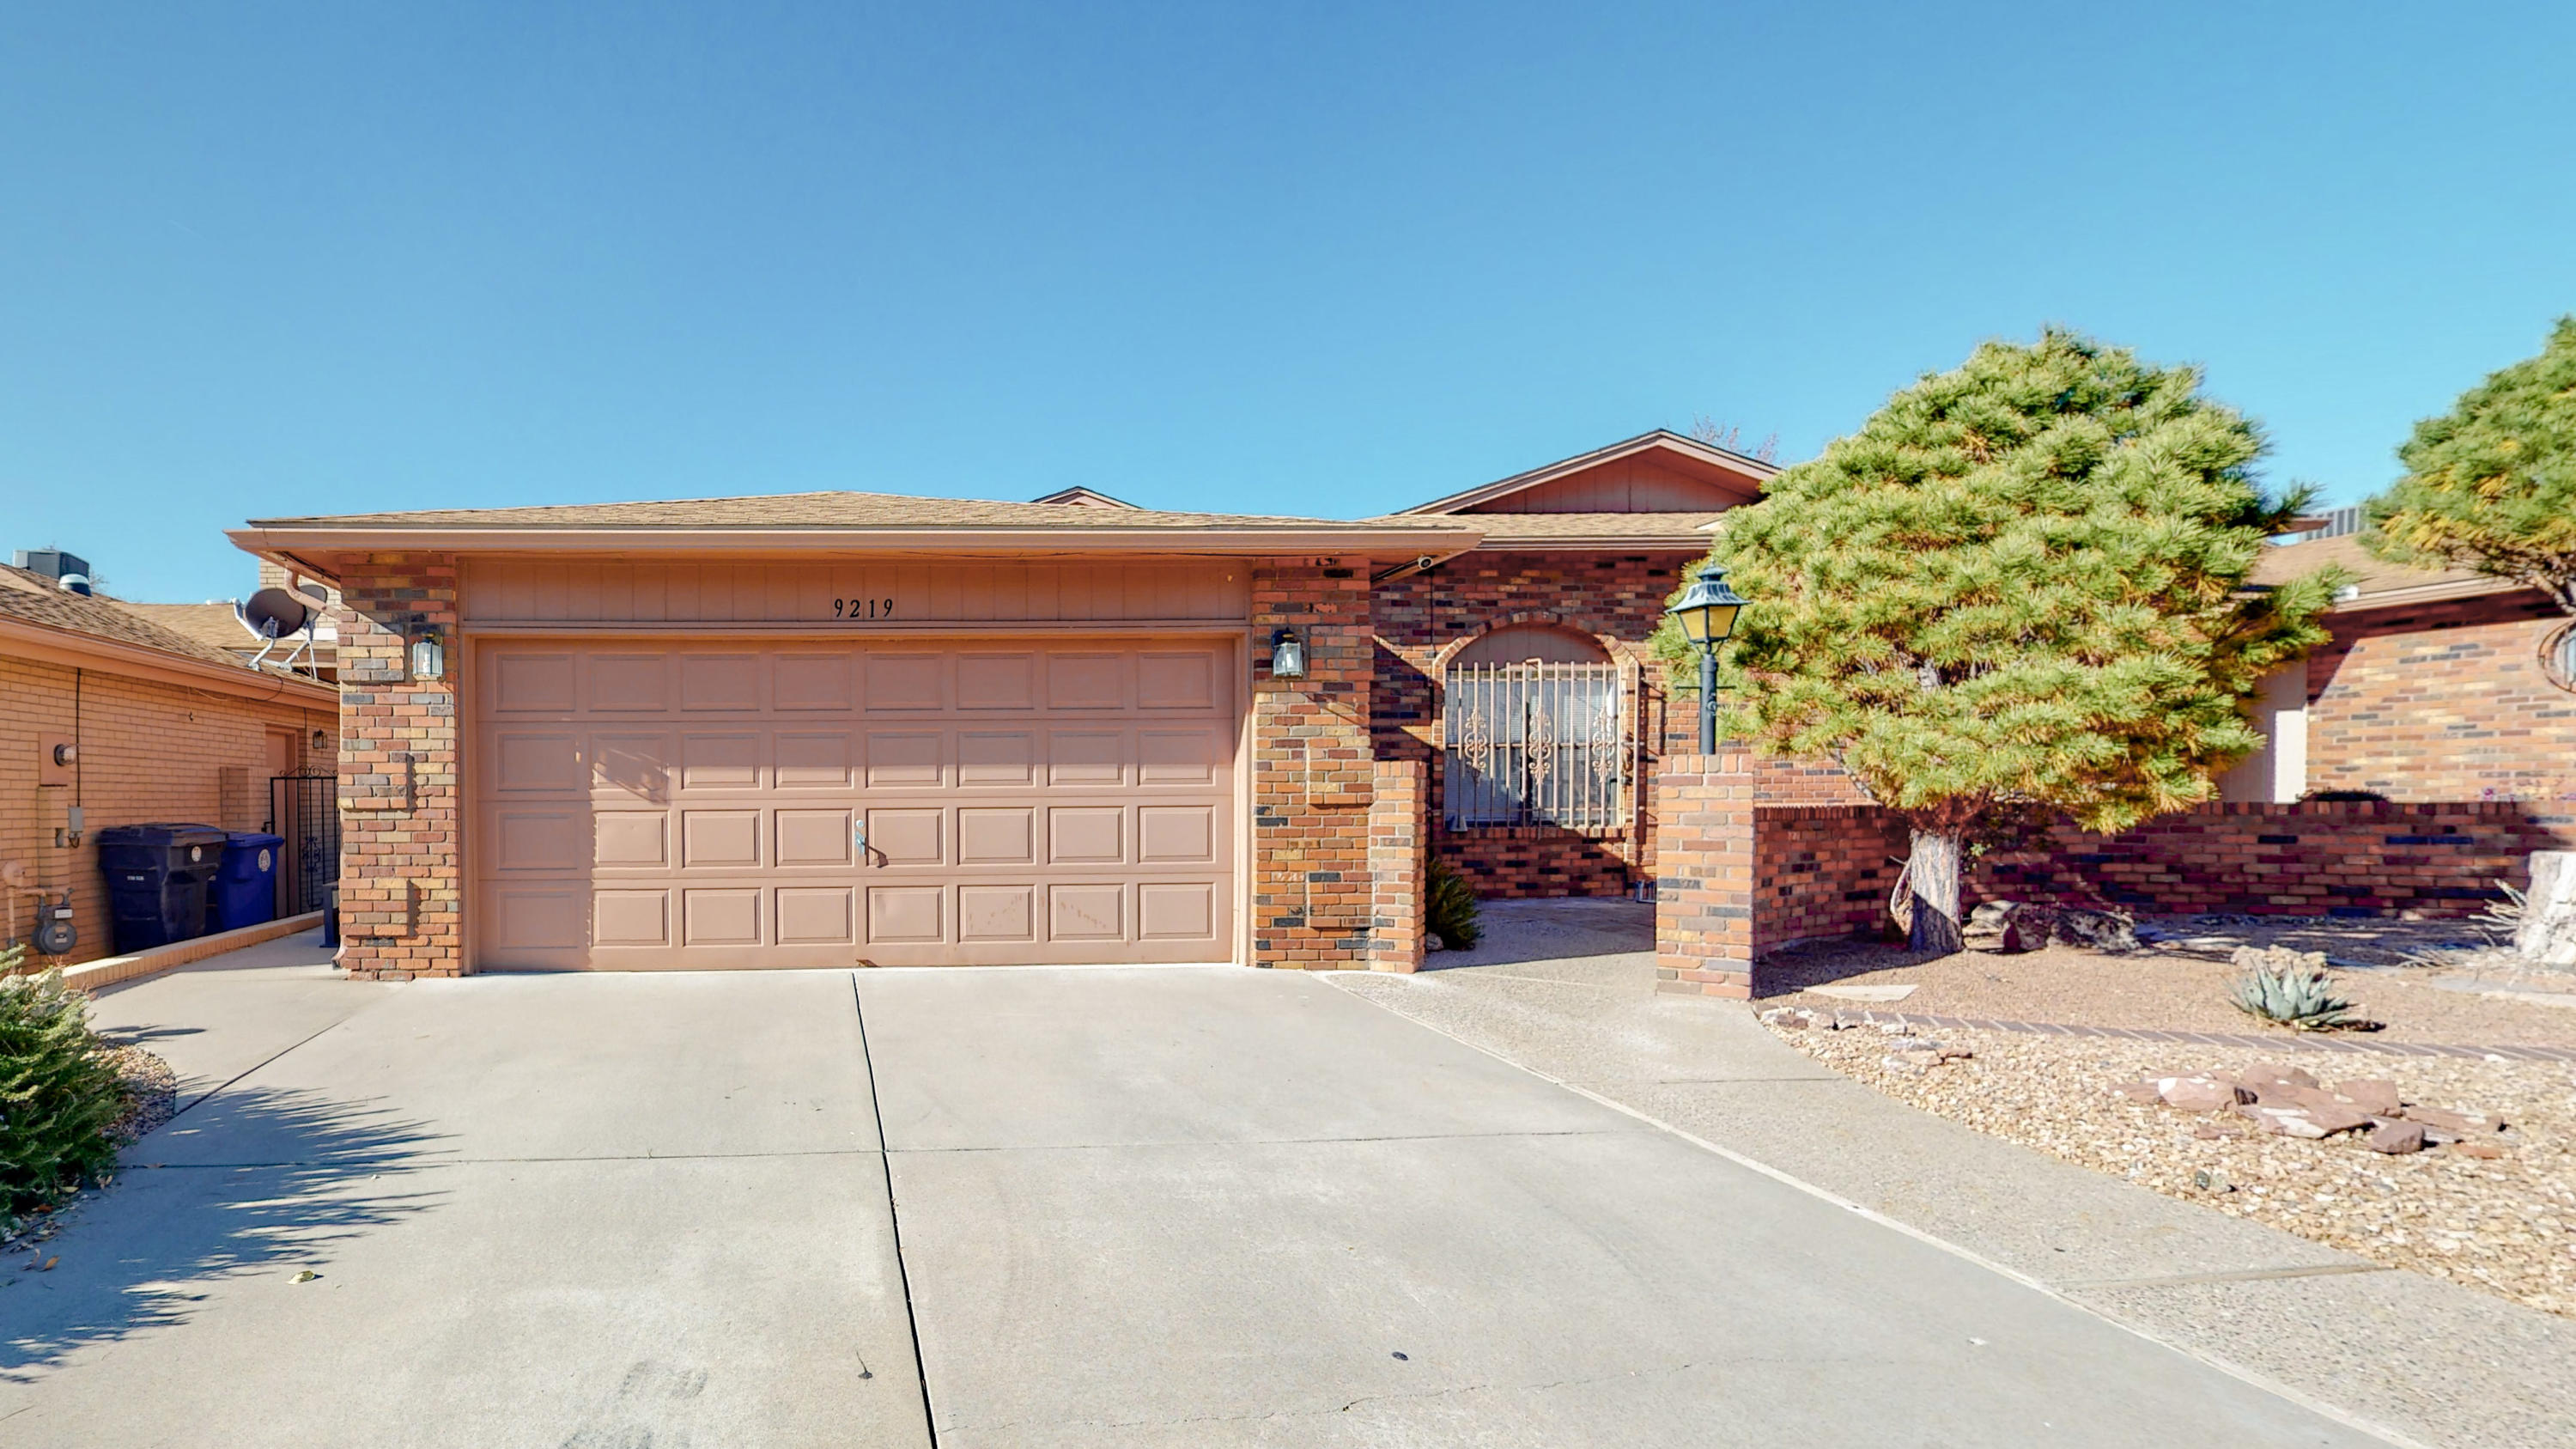 Welcome Home!  Highly sought after townhome in extremely desirable Academy Hills! This low maintenance townhome will WOW you with lots of great features! 2 large bedrooms plus a possible 3rd bedroom or study! Beautiful mountain view, tile foyer, large great room and formal dining with raised vaulted ceiling and fireplace!  Big eat-in kitchen with tile floors has been recently remodeled with granite countertops and new appliances!  Oversized owner's suite with double sinks and two large closets.  New roof installed in 2018, REFRIGERATED AIR, low maintenance yards with brick inlay courtyard and newly tiled back patio!   Immaculate and proudly maintained!